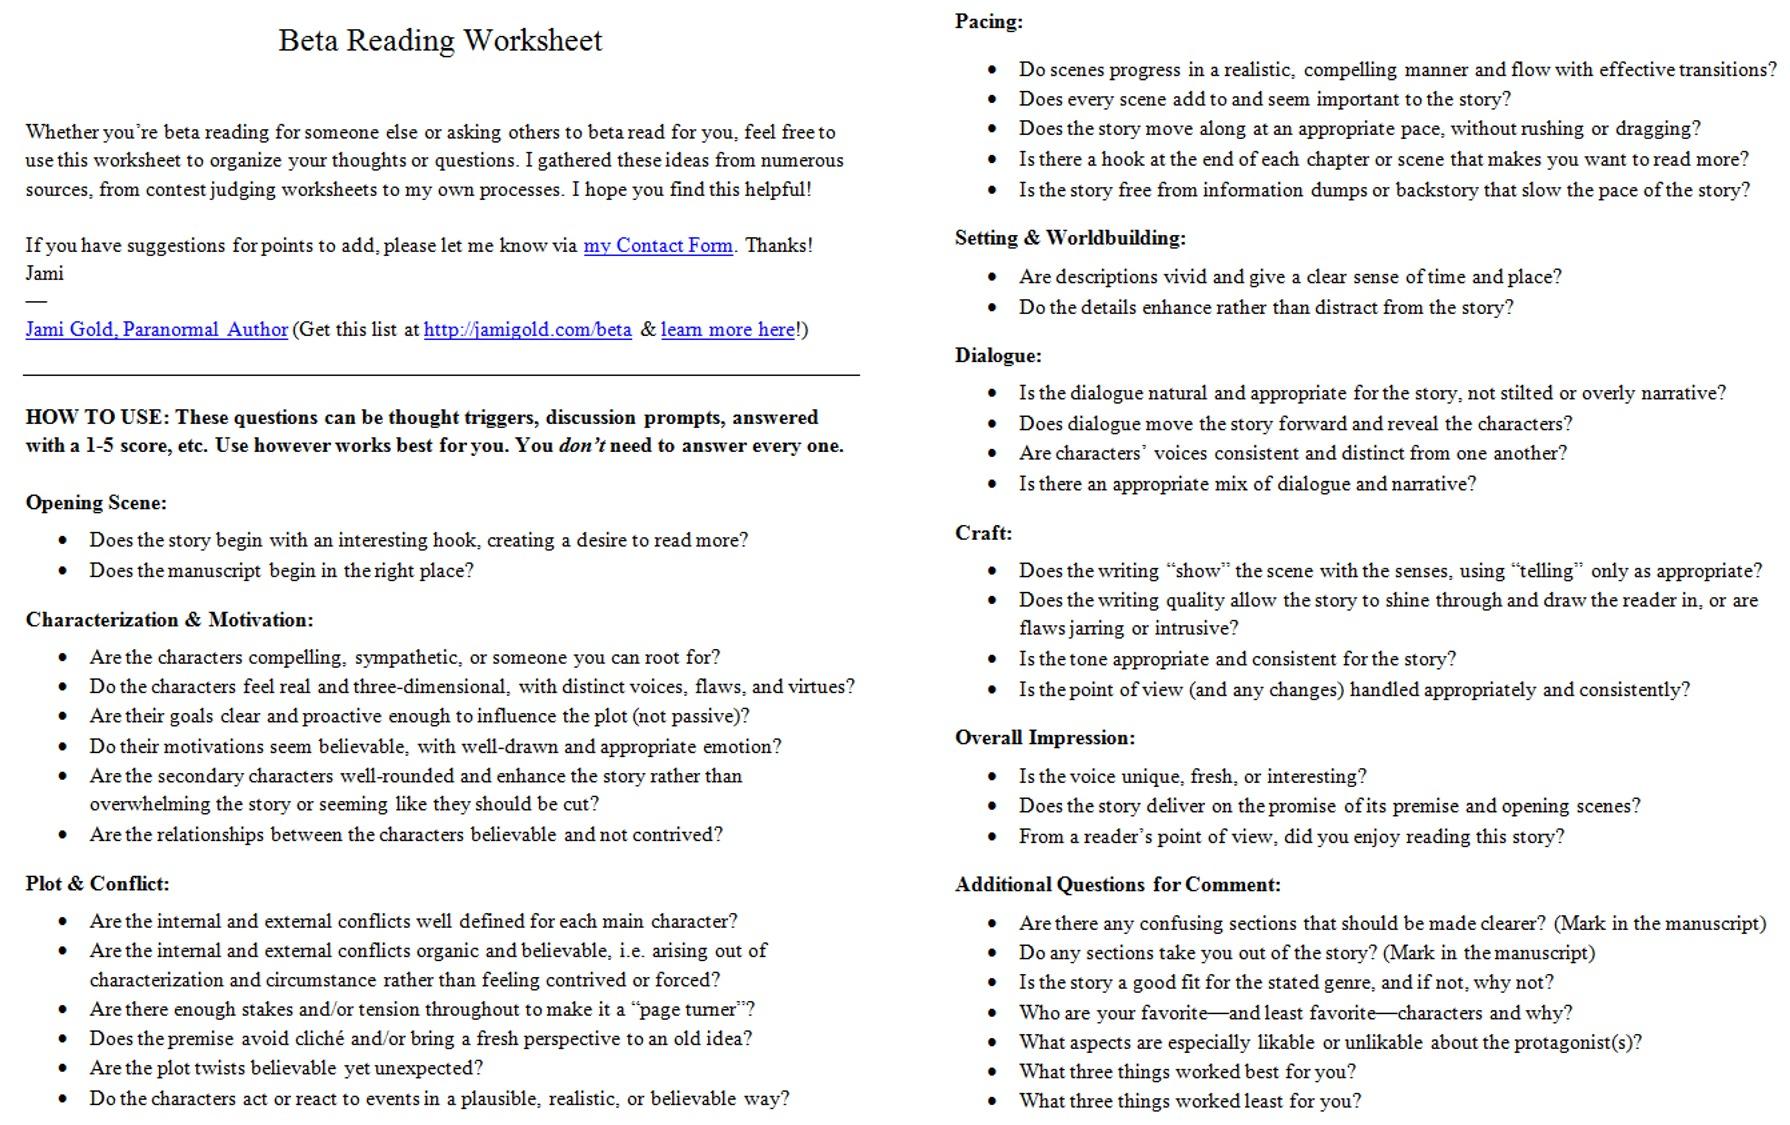 Proatmealus  Winsome Worksheets For Writers  Jami Gold Paranormal Author With Interesting Screen Shot Of The Twopage Beta Reading Worksheet With Lovely Reading Comprehension Worksheets For Th Grade Printables Also Personification Worksheets Pdf In Addition Mixed Number Addition And Subtraction Worksheets And Transformations Rotations Worksheet As Well As Stereotypes Worksheet Additionally Emotional Health Worksheets From Jamigoldcom With Proatmealus  Interesting Worksheets For Writers  Jami Gold Paranormal Author With Lovely Screen Shot Of The Twopage Beta Reading Worksheet And Winsome Reading Comprehension Worksheets For Th Grade Printables Also Personification Worksheets Pdf In Addition Mixed Number Addition And Subtraction Worksheets From Jamigoldcom